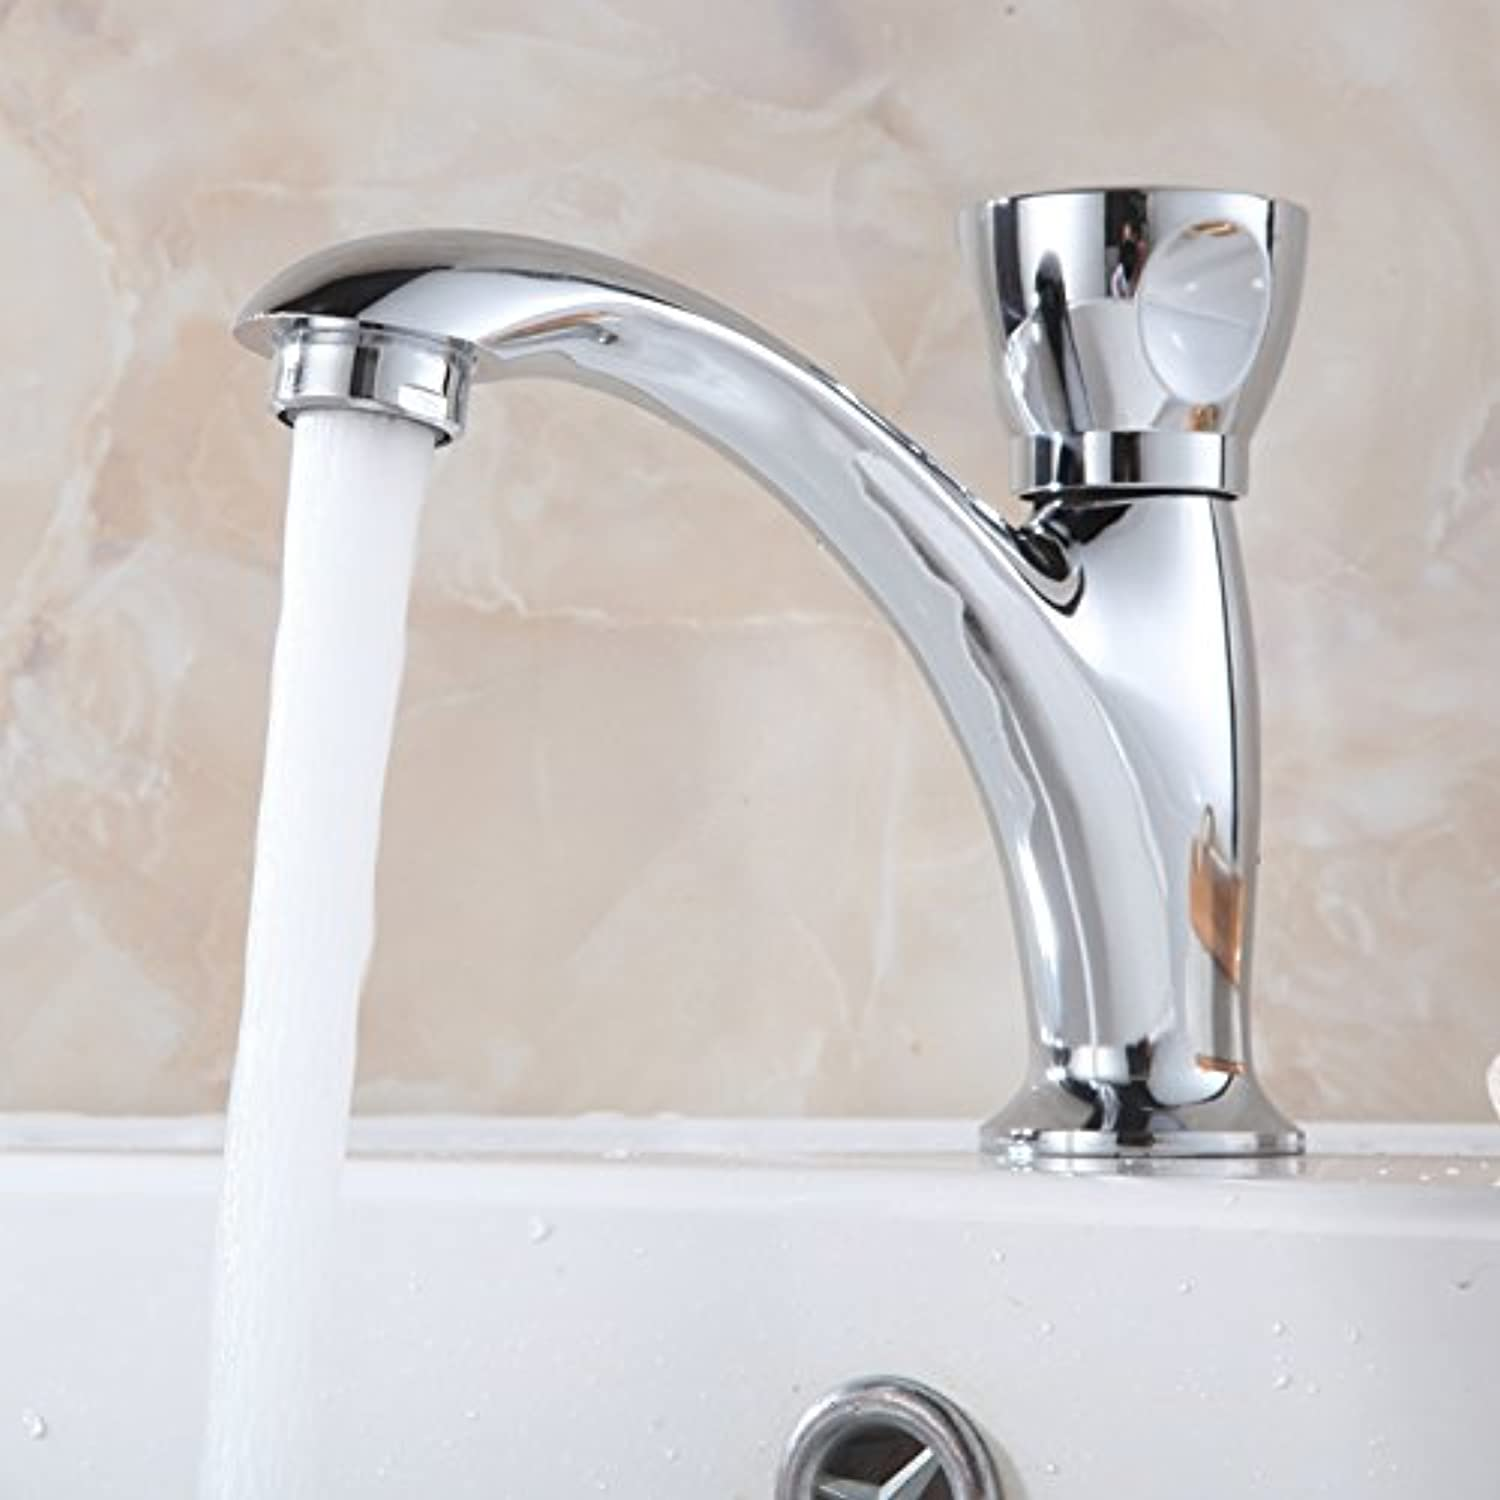 Hansgoed Single Cold Faucet Basin Faucet Single Hole Basin Faucet Basinquality Assurance Of Modern Simple Luxury, Luxury And Ancient Classic Home Decoration